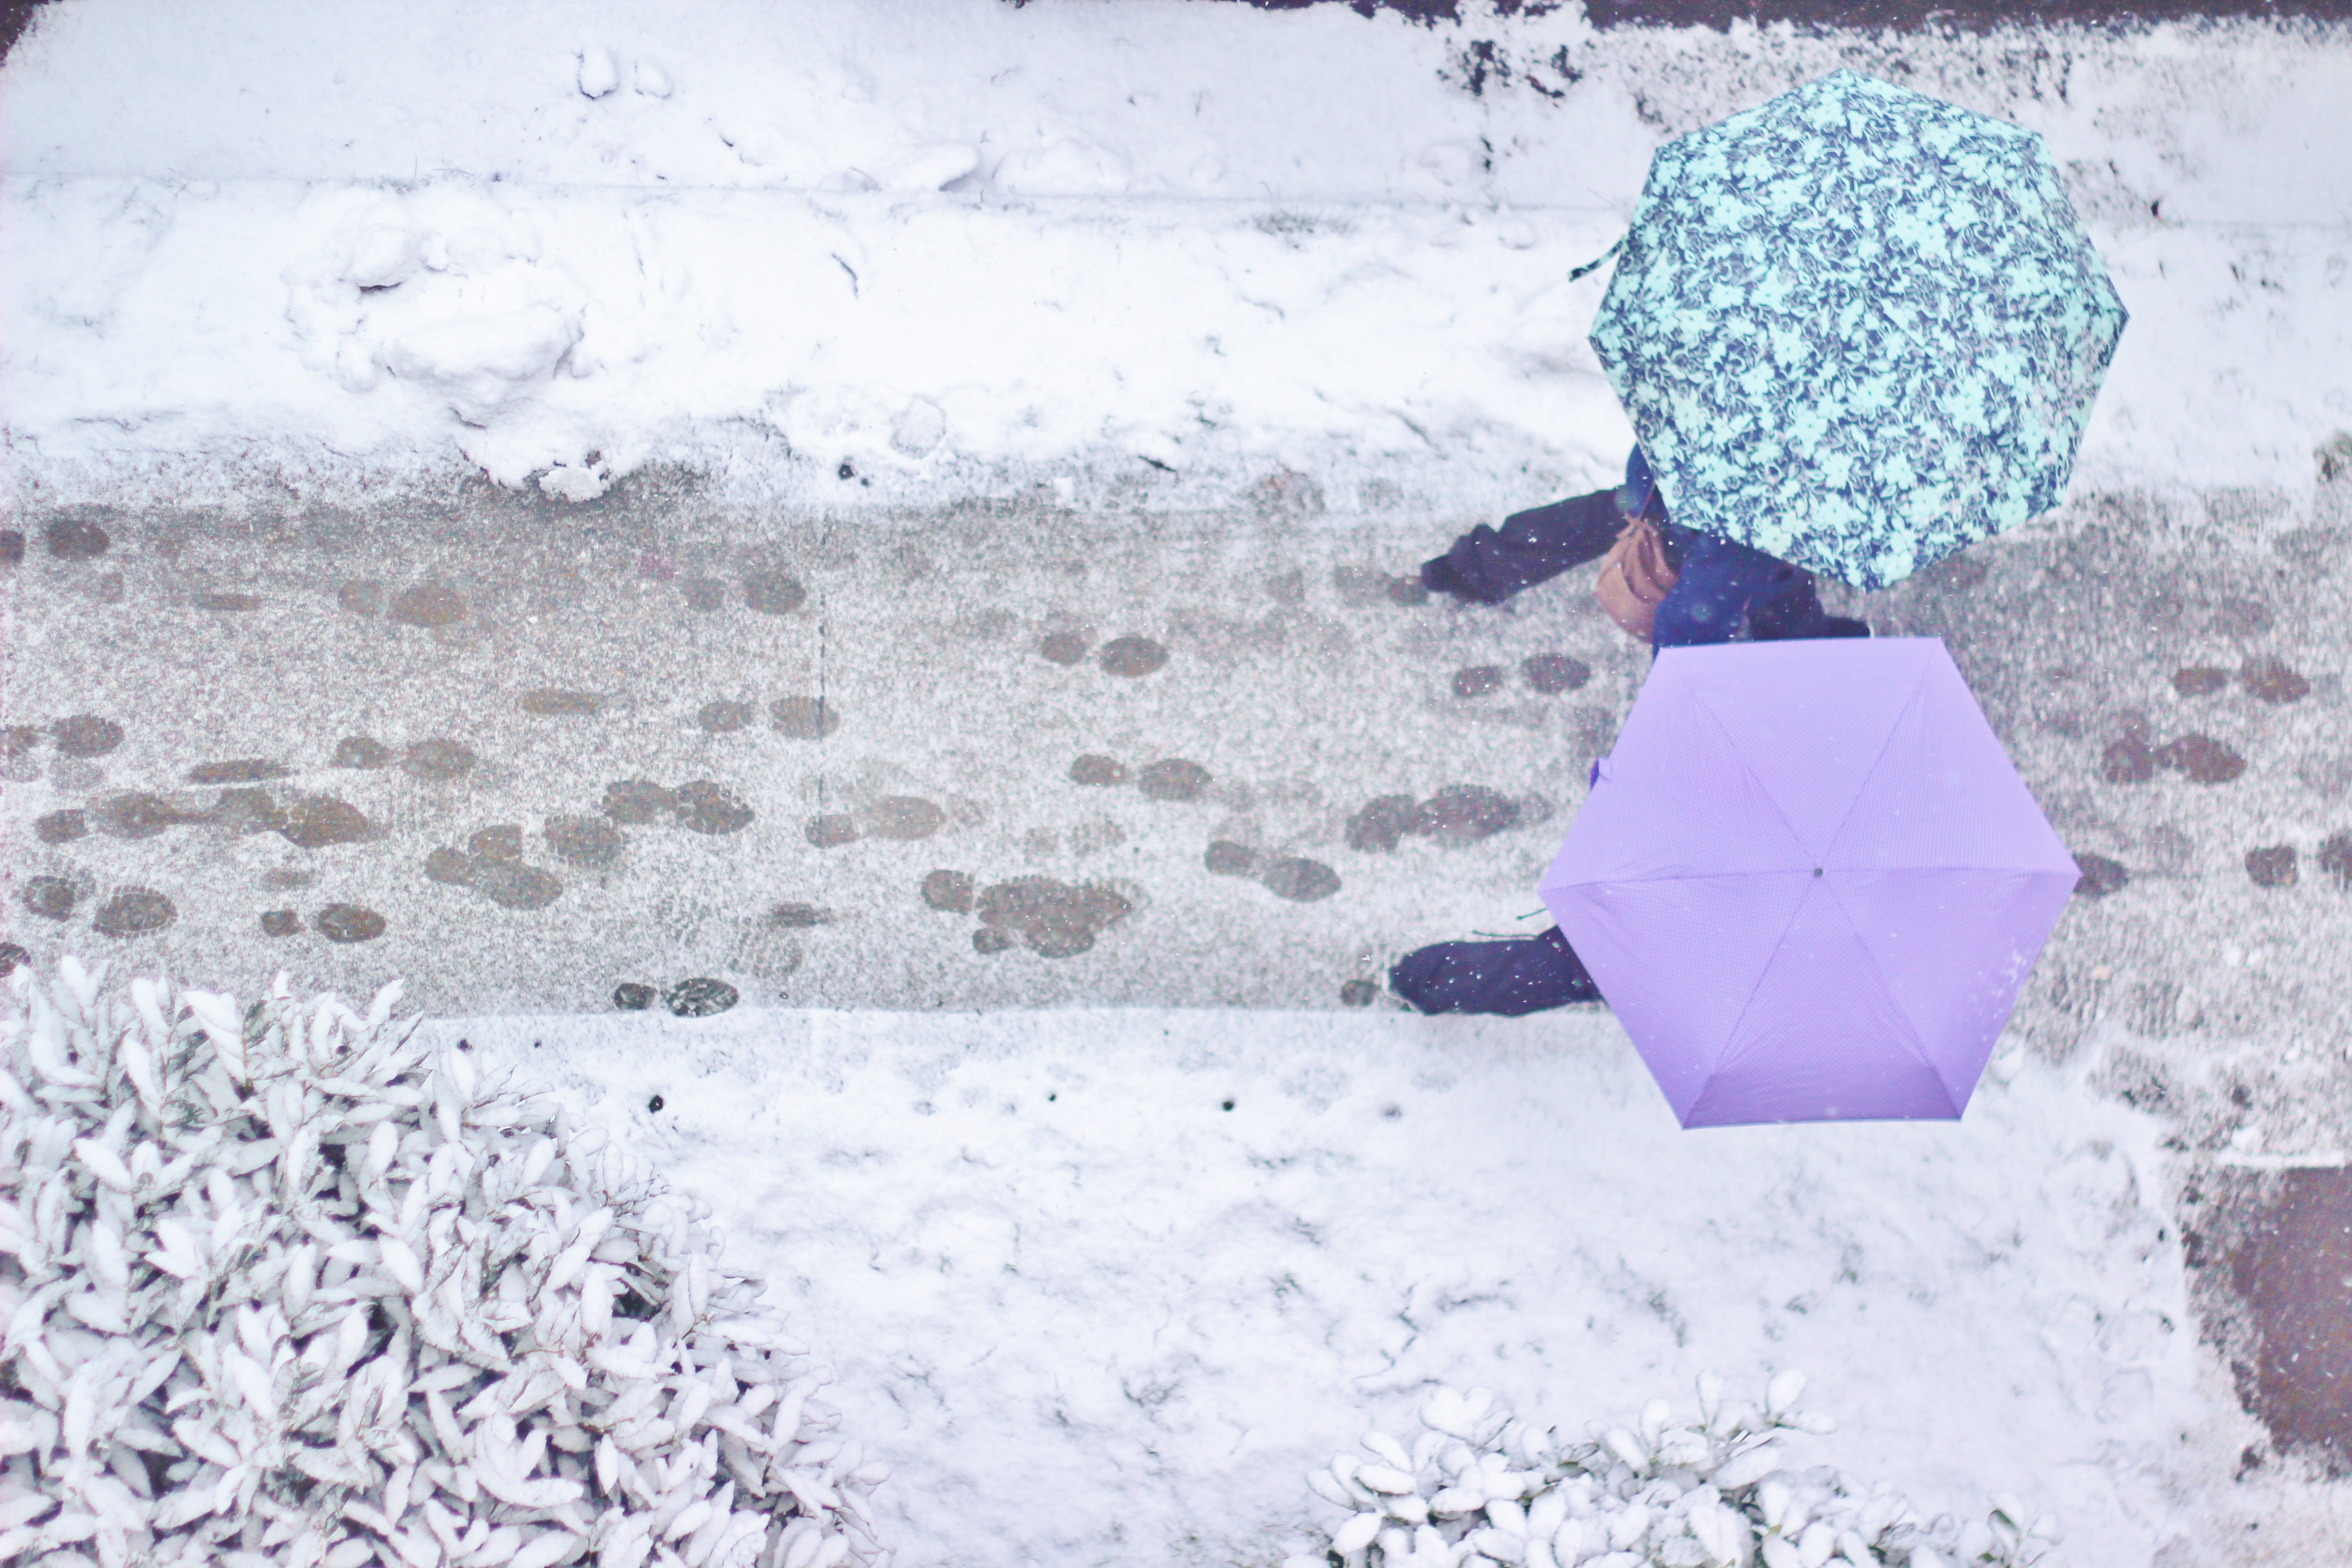 More snow expected for weekend